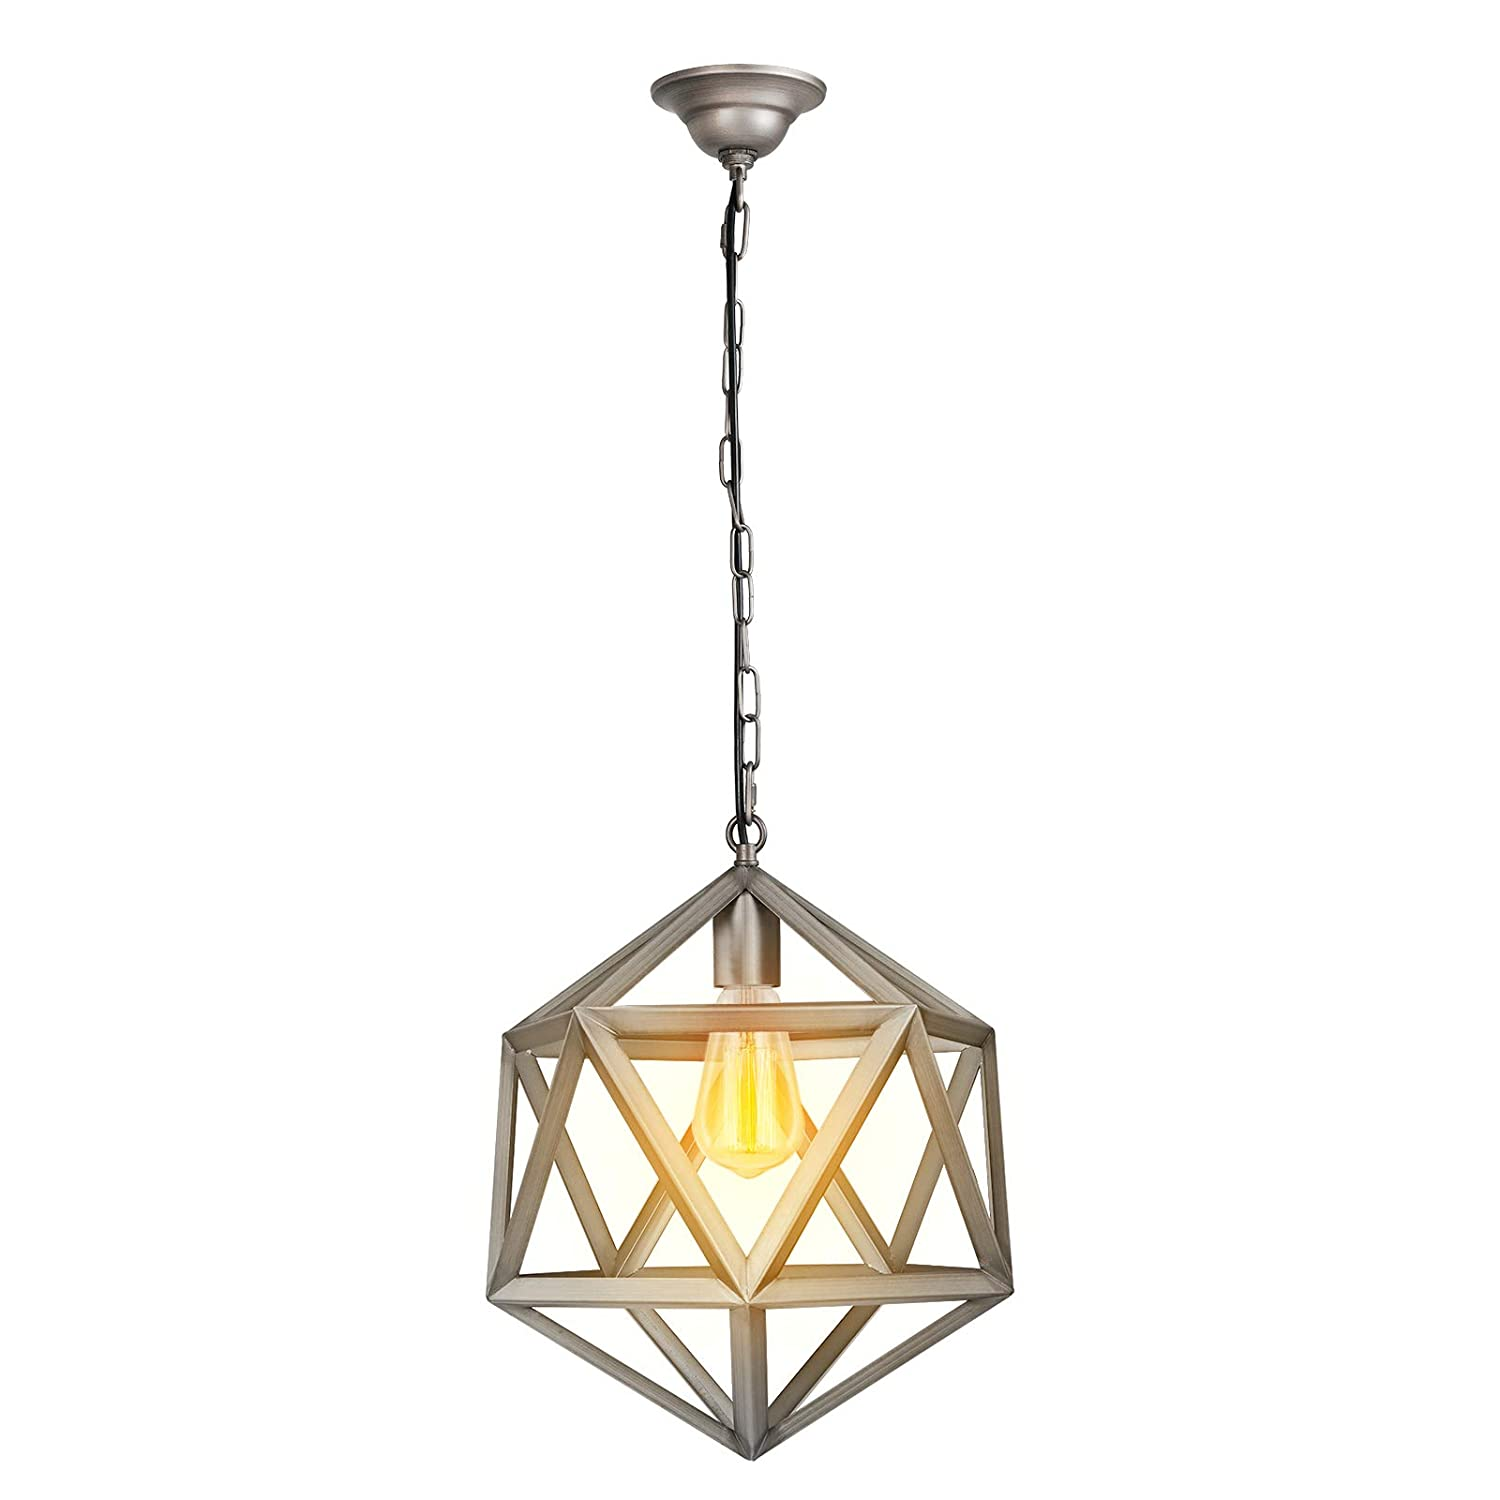 Paragon home geometric pendant light fixture for kitchen and dining room polygon industrial lighting fixture foyer chandelier e26 base antique nickel